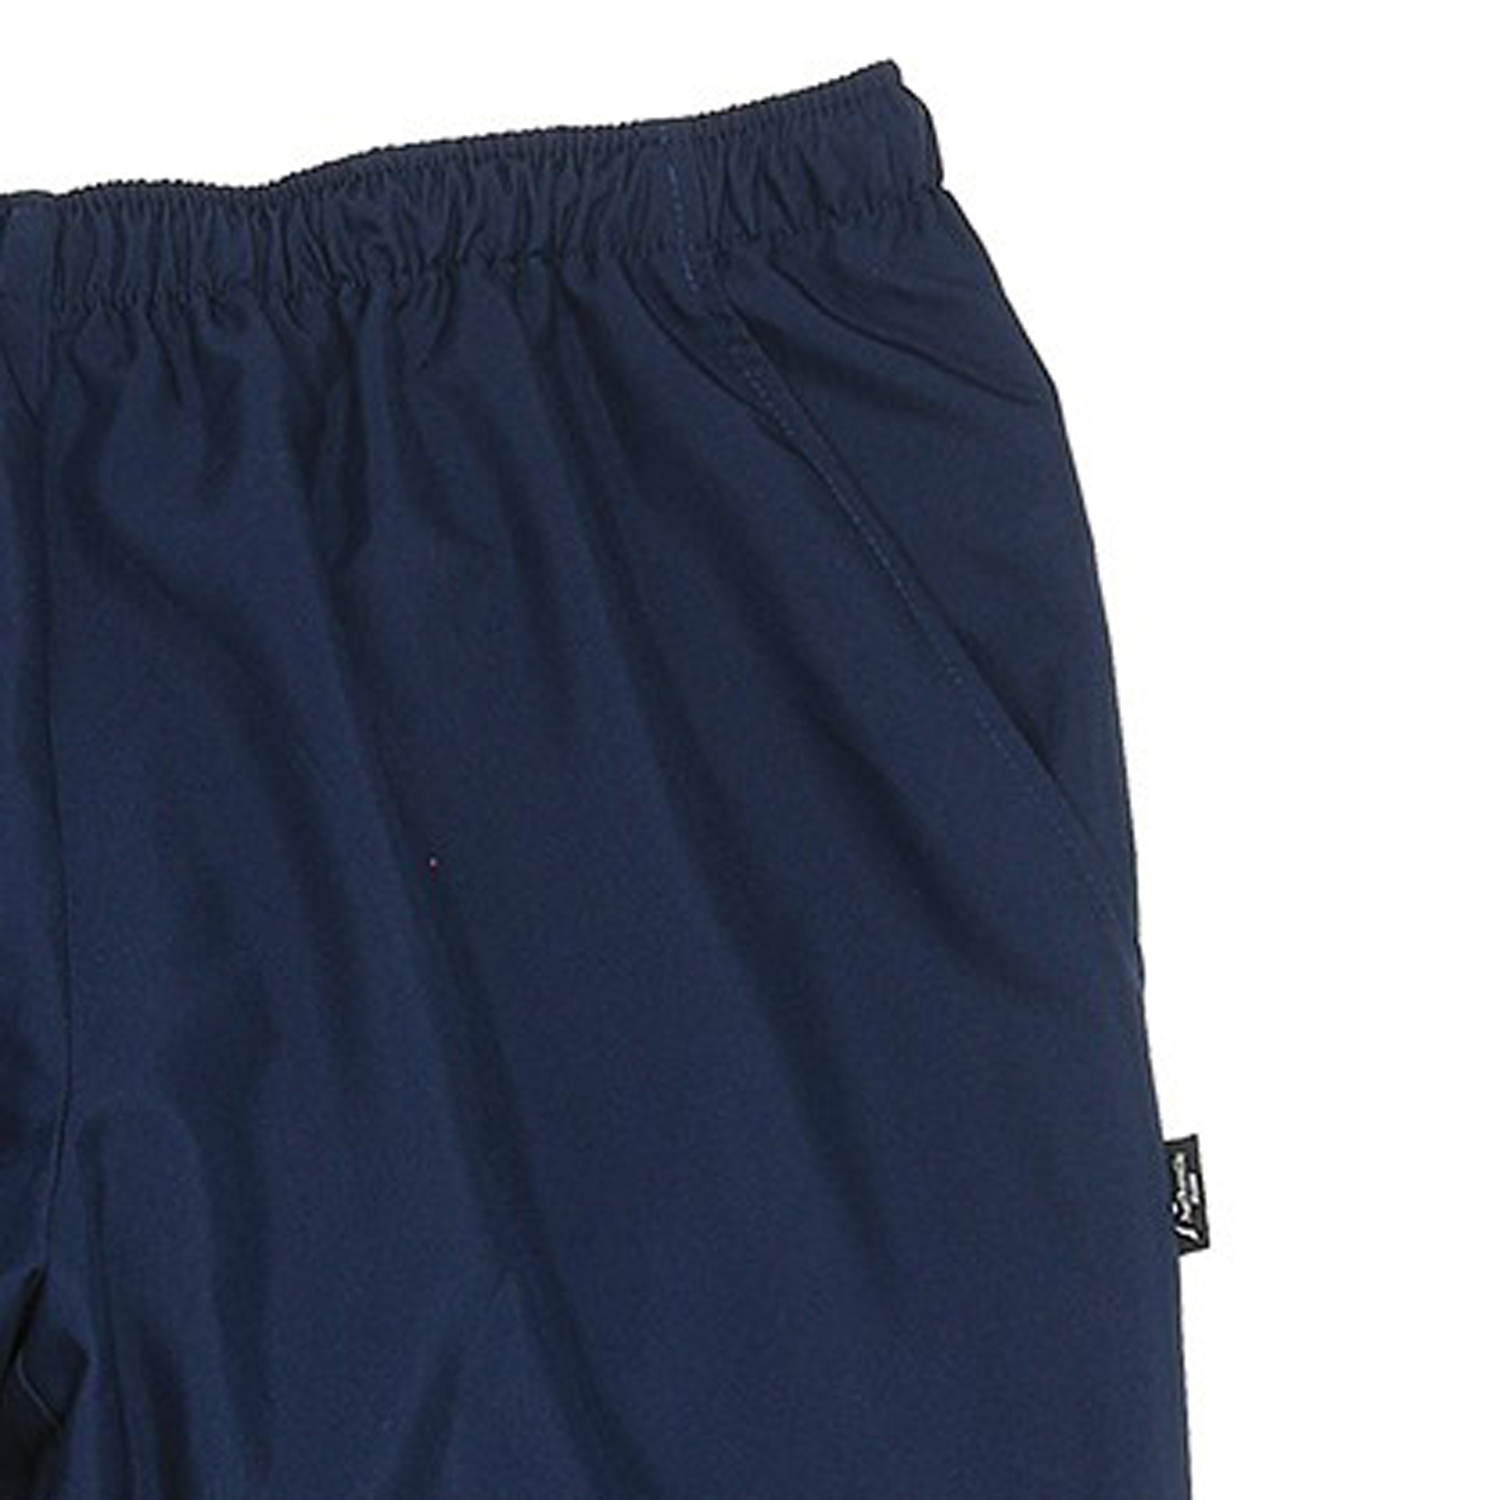 Detail Image to Sports and leisure sweatpants in blue, plus sizes by AUTHENTIC KLEIN